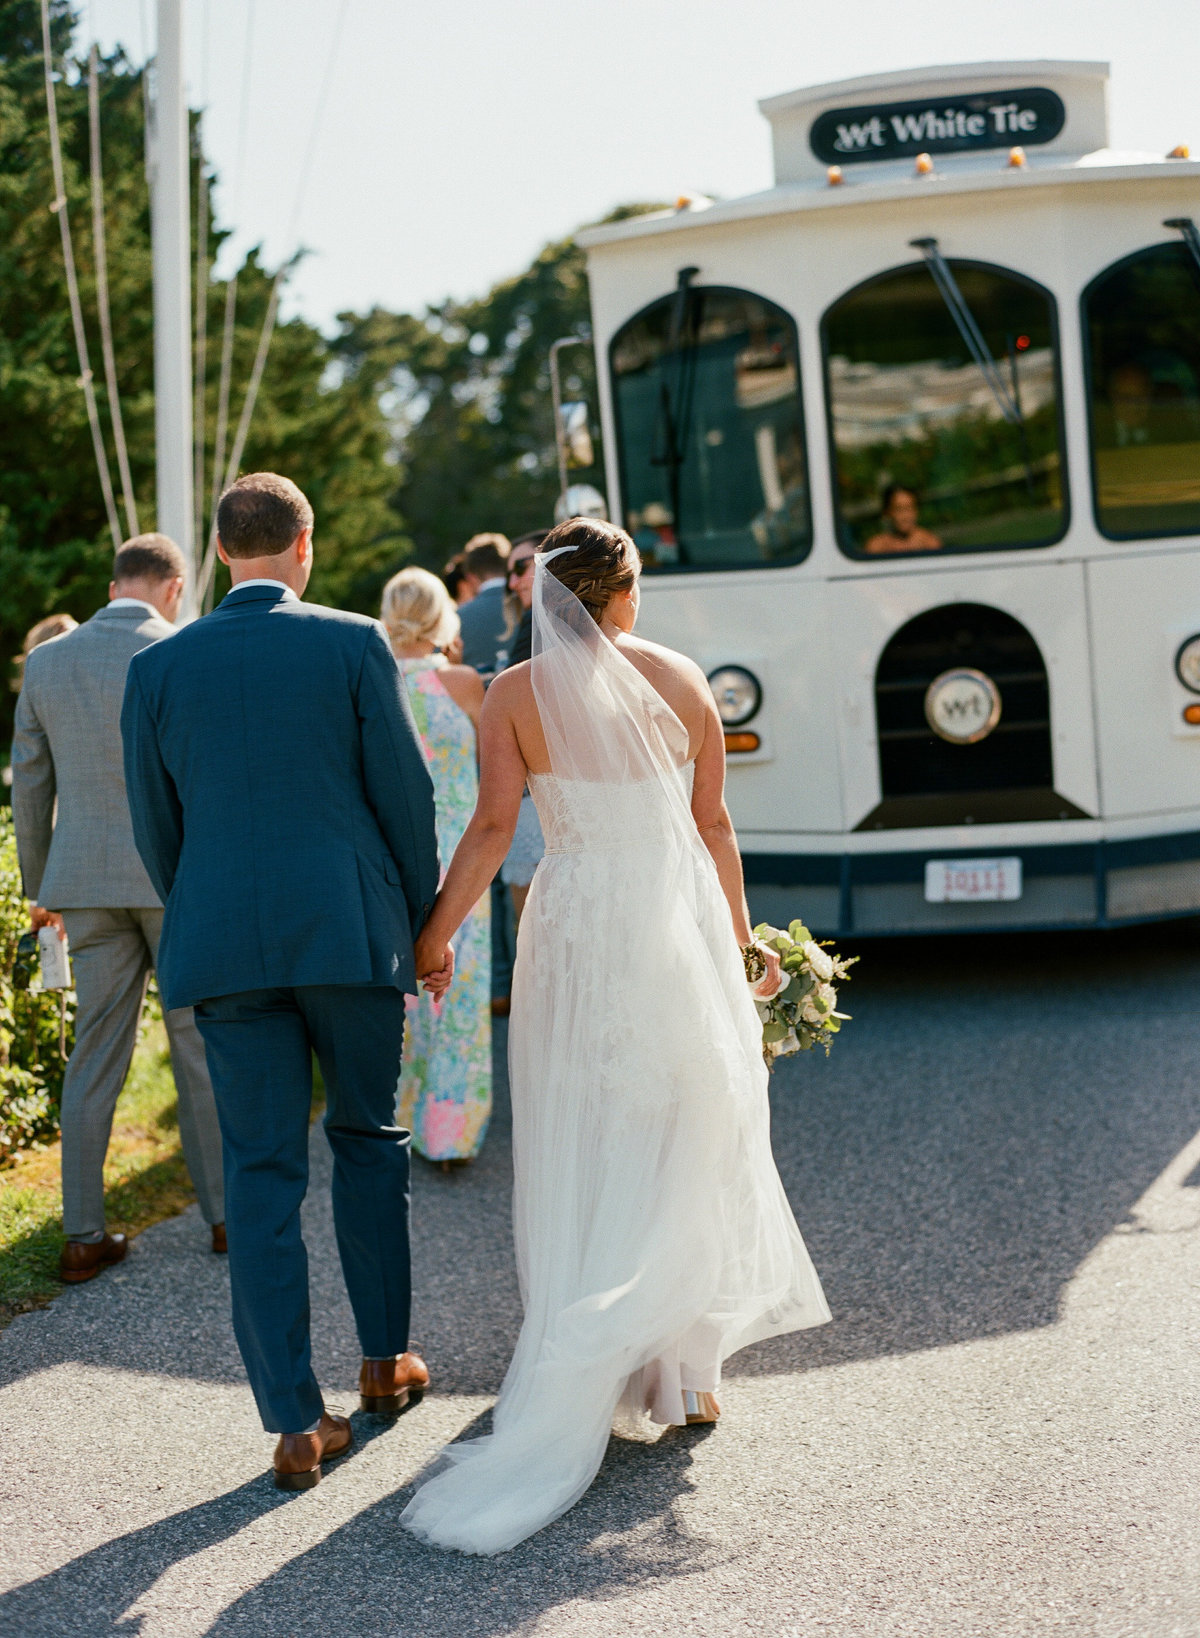 Bride and groom trolley